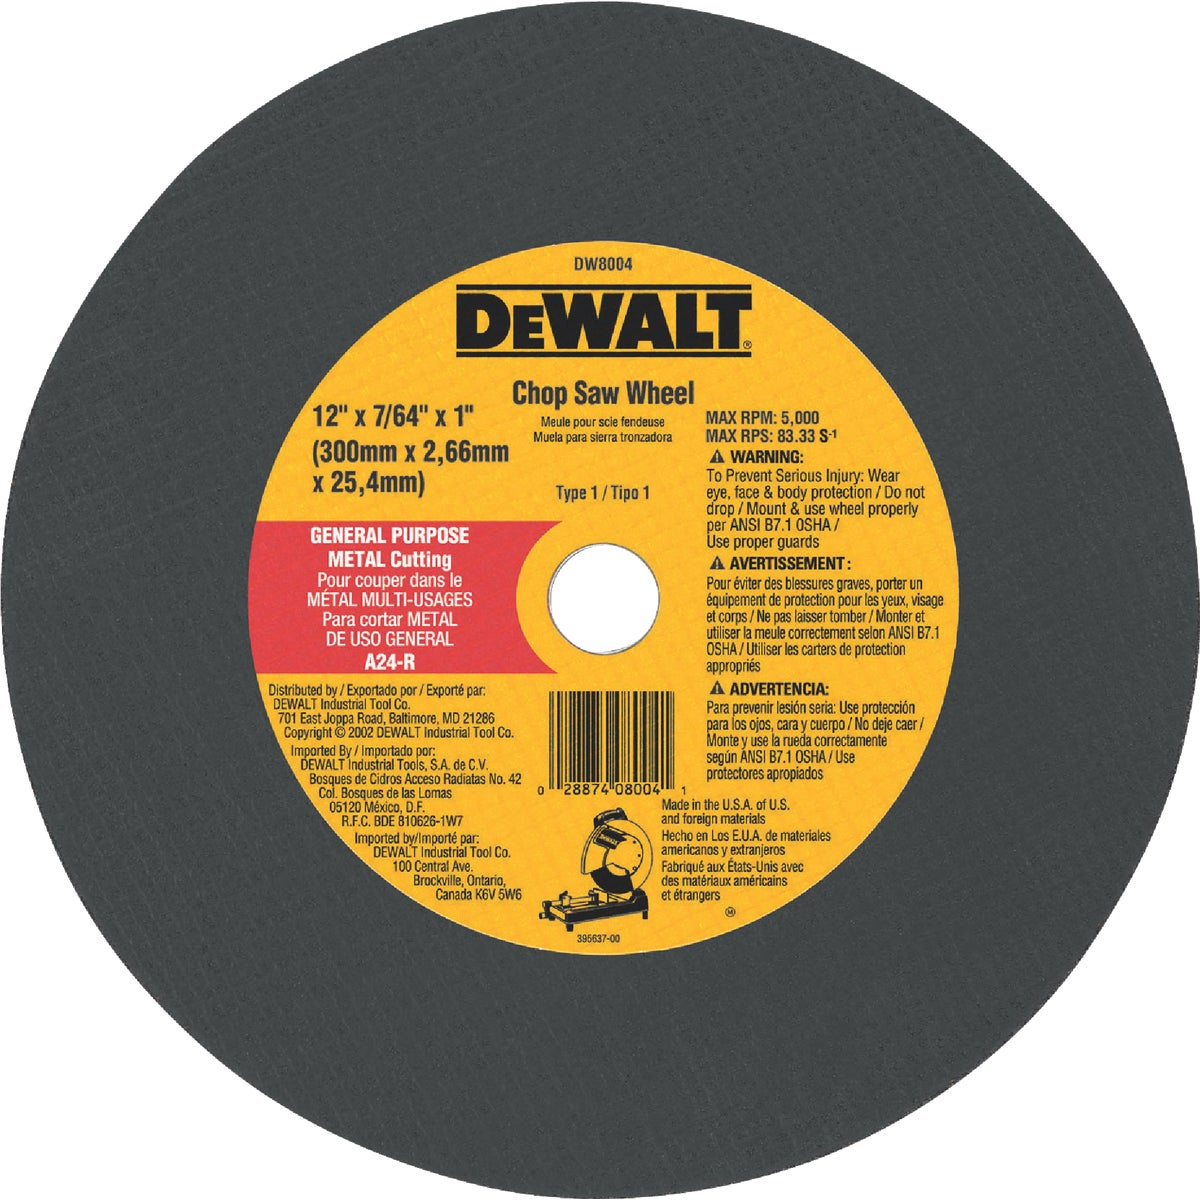 12X7/64 CUTOFF WHEEL - DW8004 by DeWalt